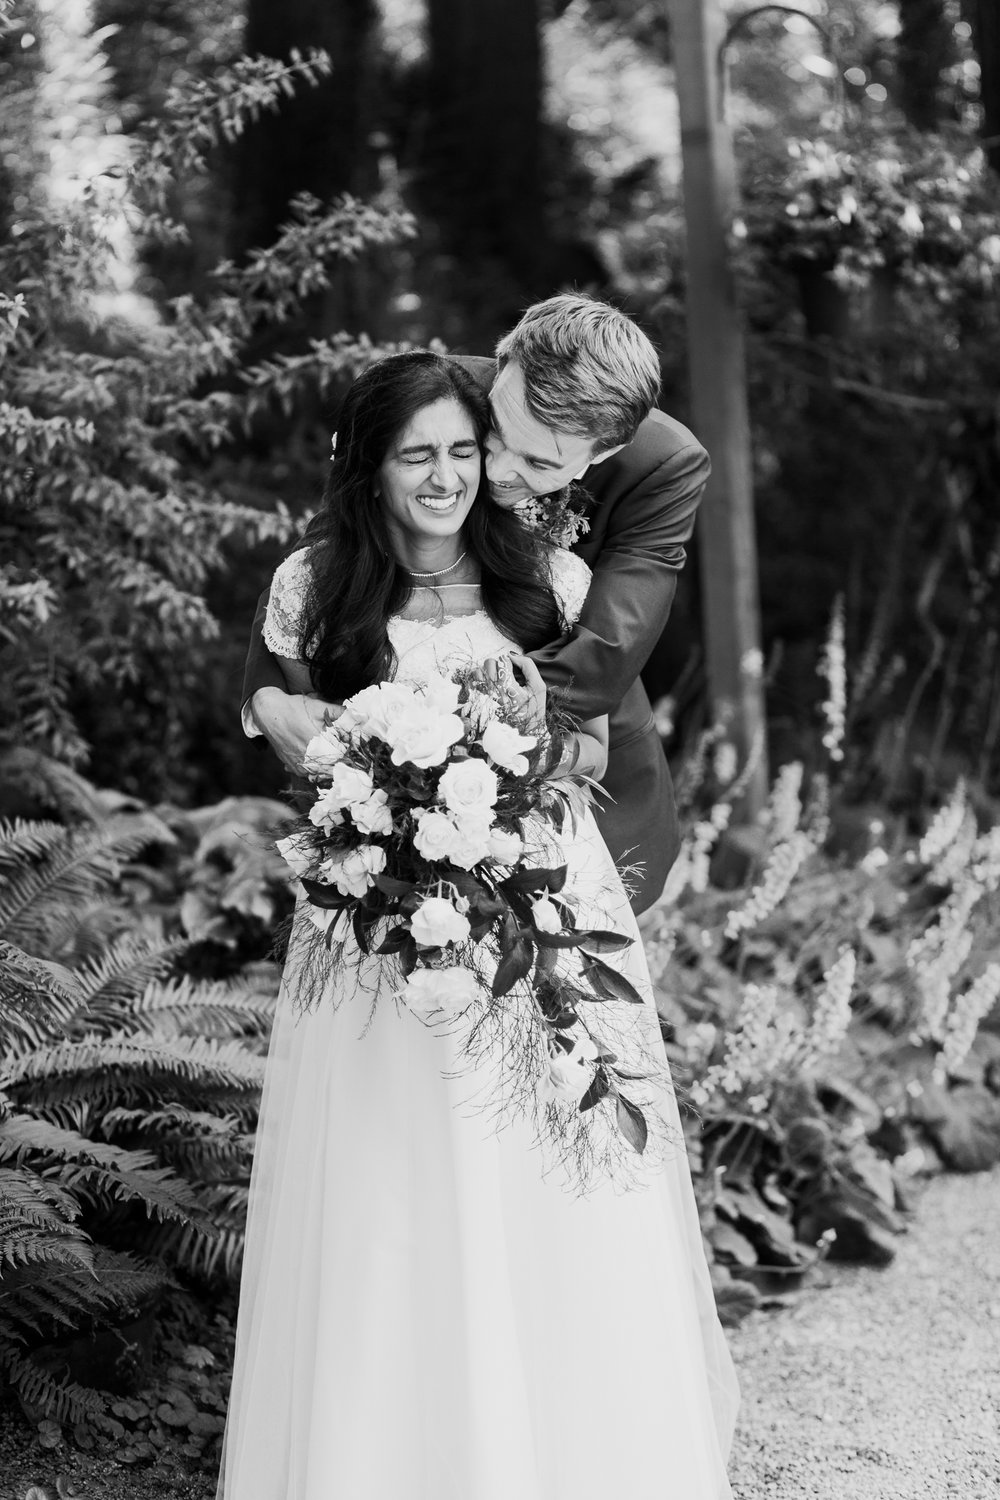 bodega bay wedding, bodega bay secret gardens, bodega bay secret gardens wedding, maria villano photography, bodega bay wedding photographer